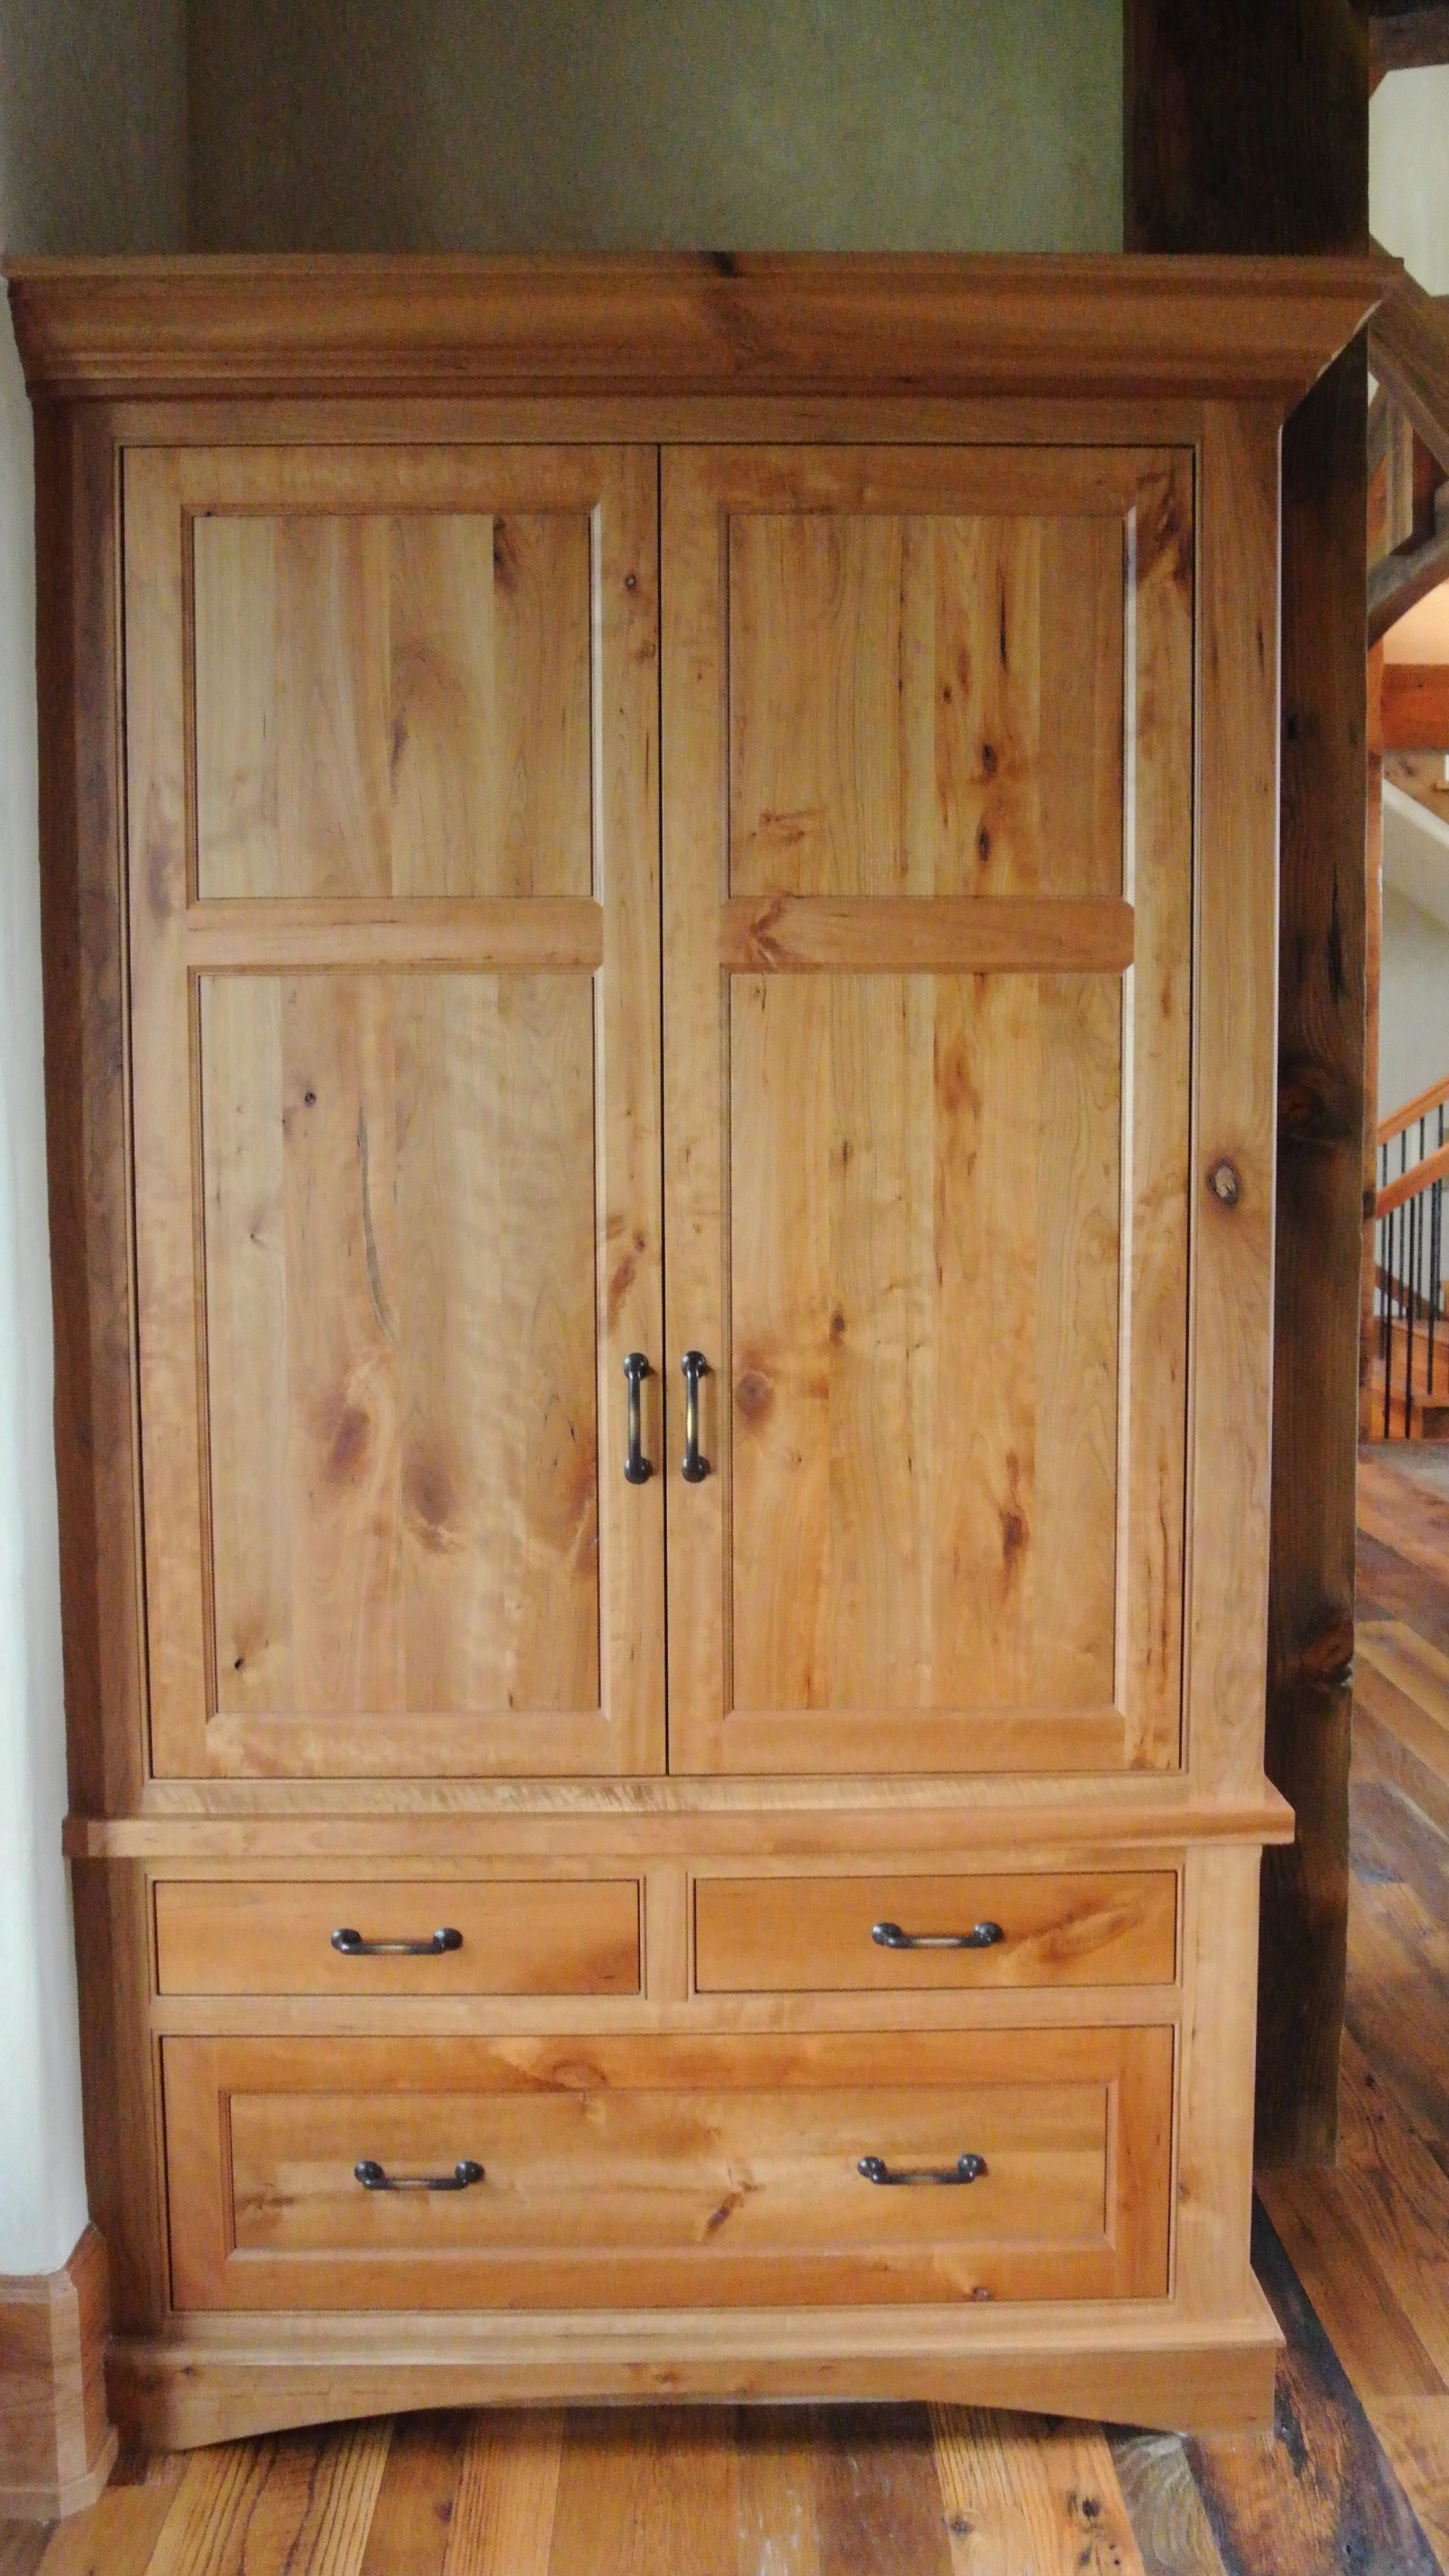 Gorgeous Armoire Wardrobe Cabinet With Custom Woodworking.